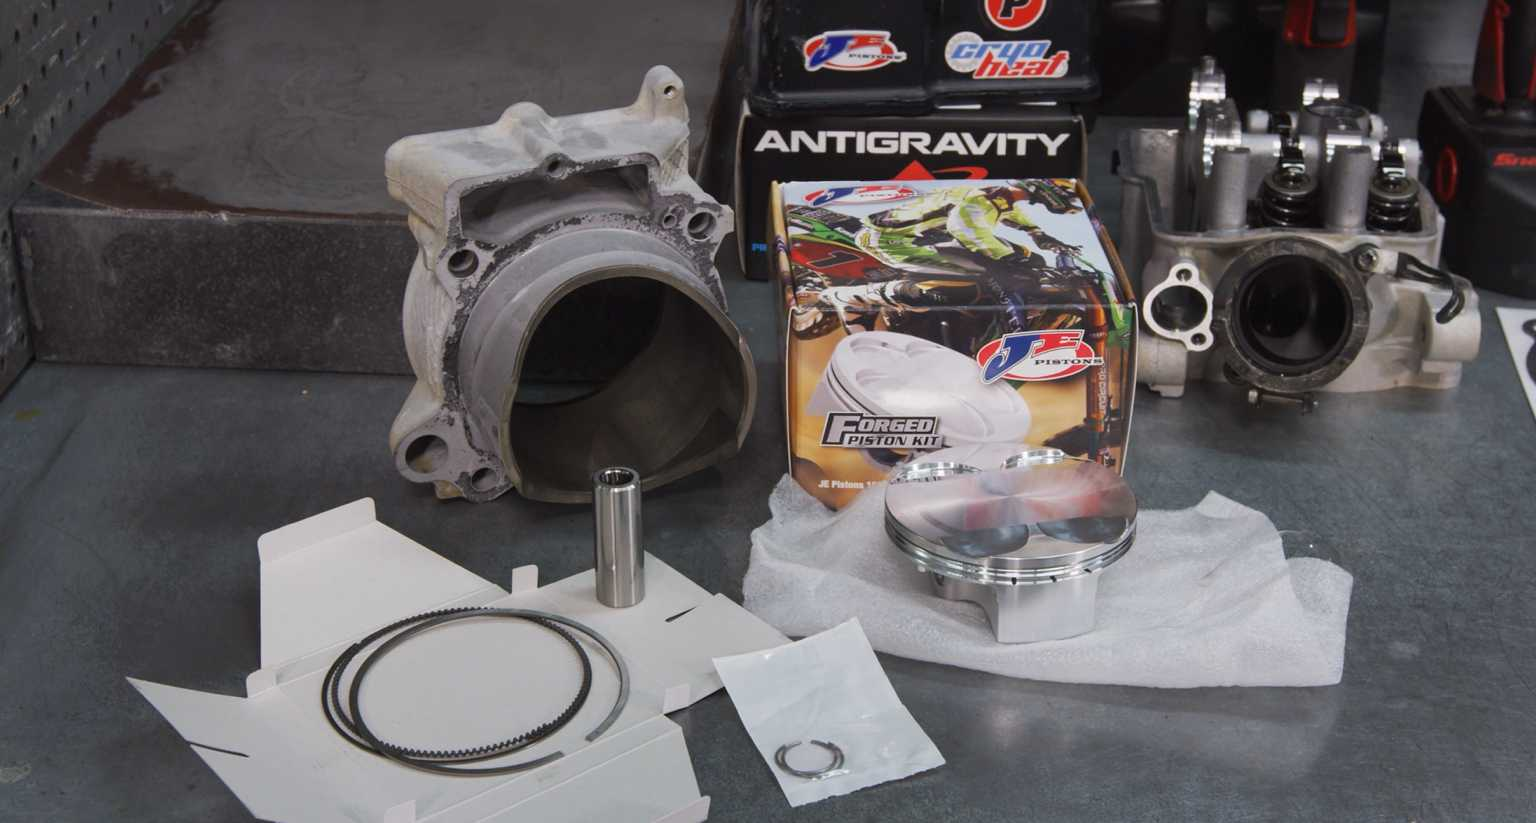 Tech Tips: Installing a New Piston in your Dirt Bike with Precision Concepts Racing